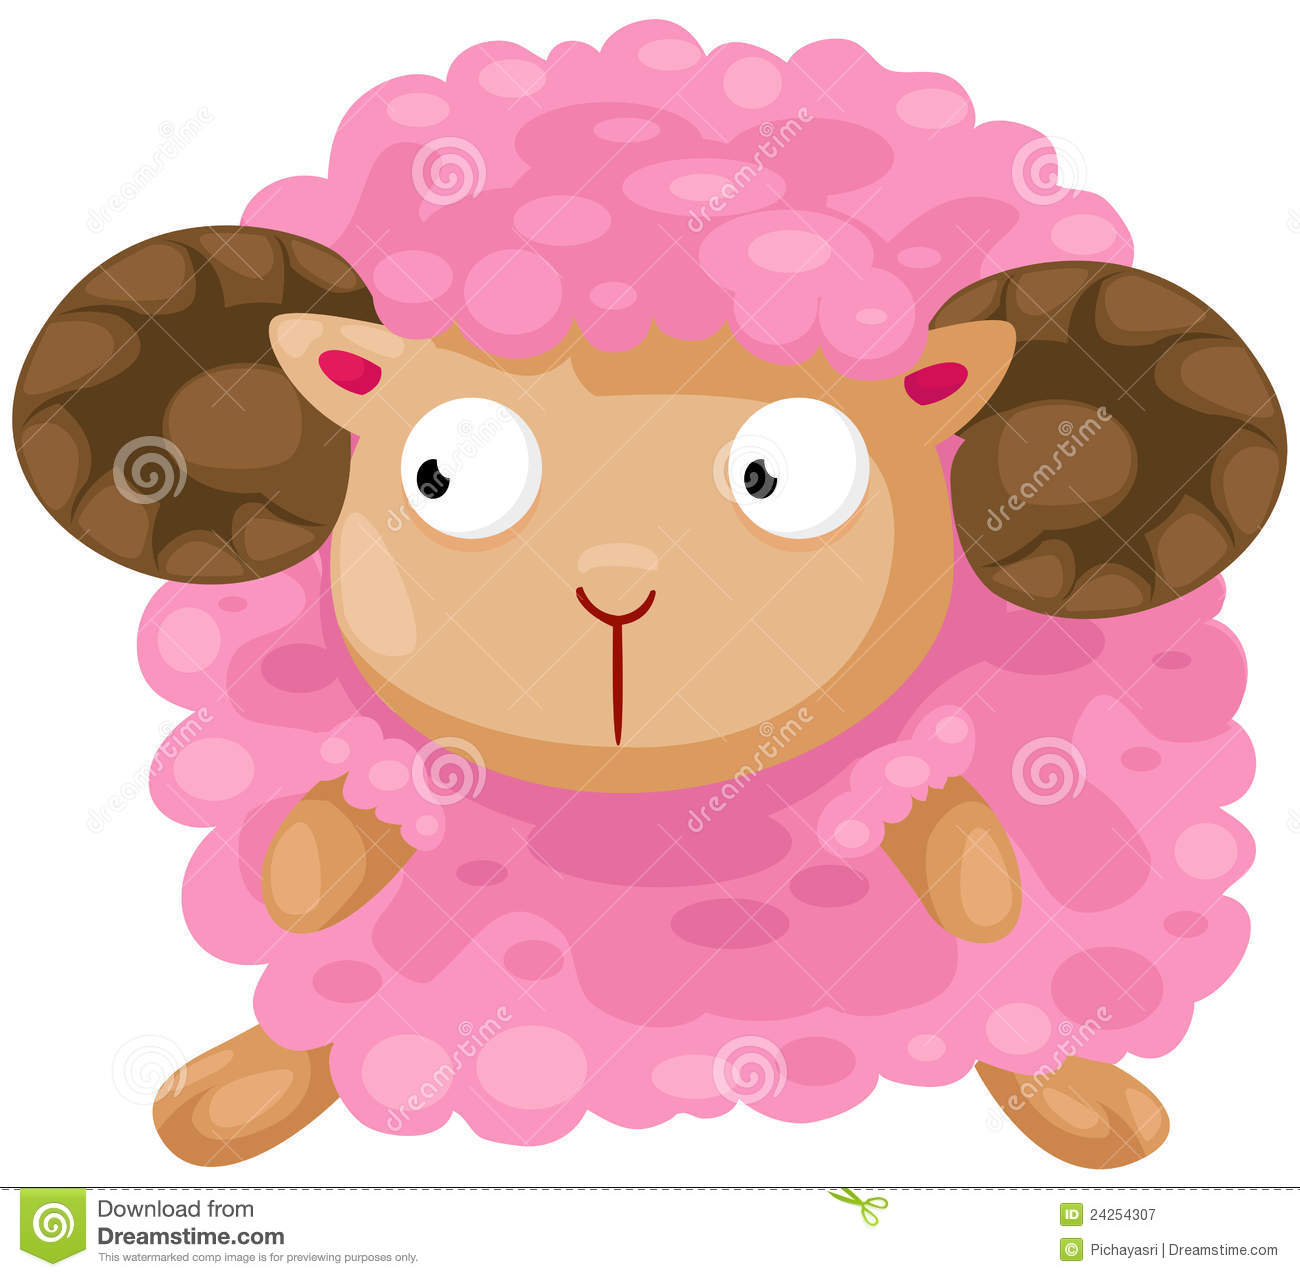 Cute Sheep Royalty Free Stock Photography Image 24254307